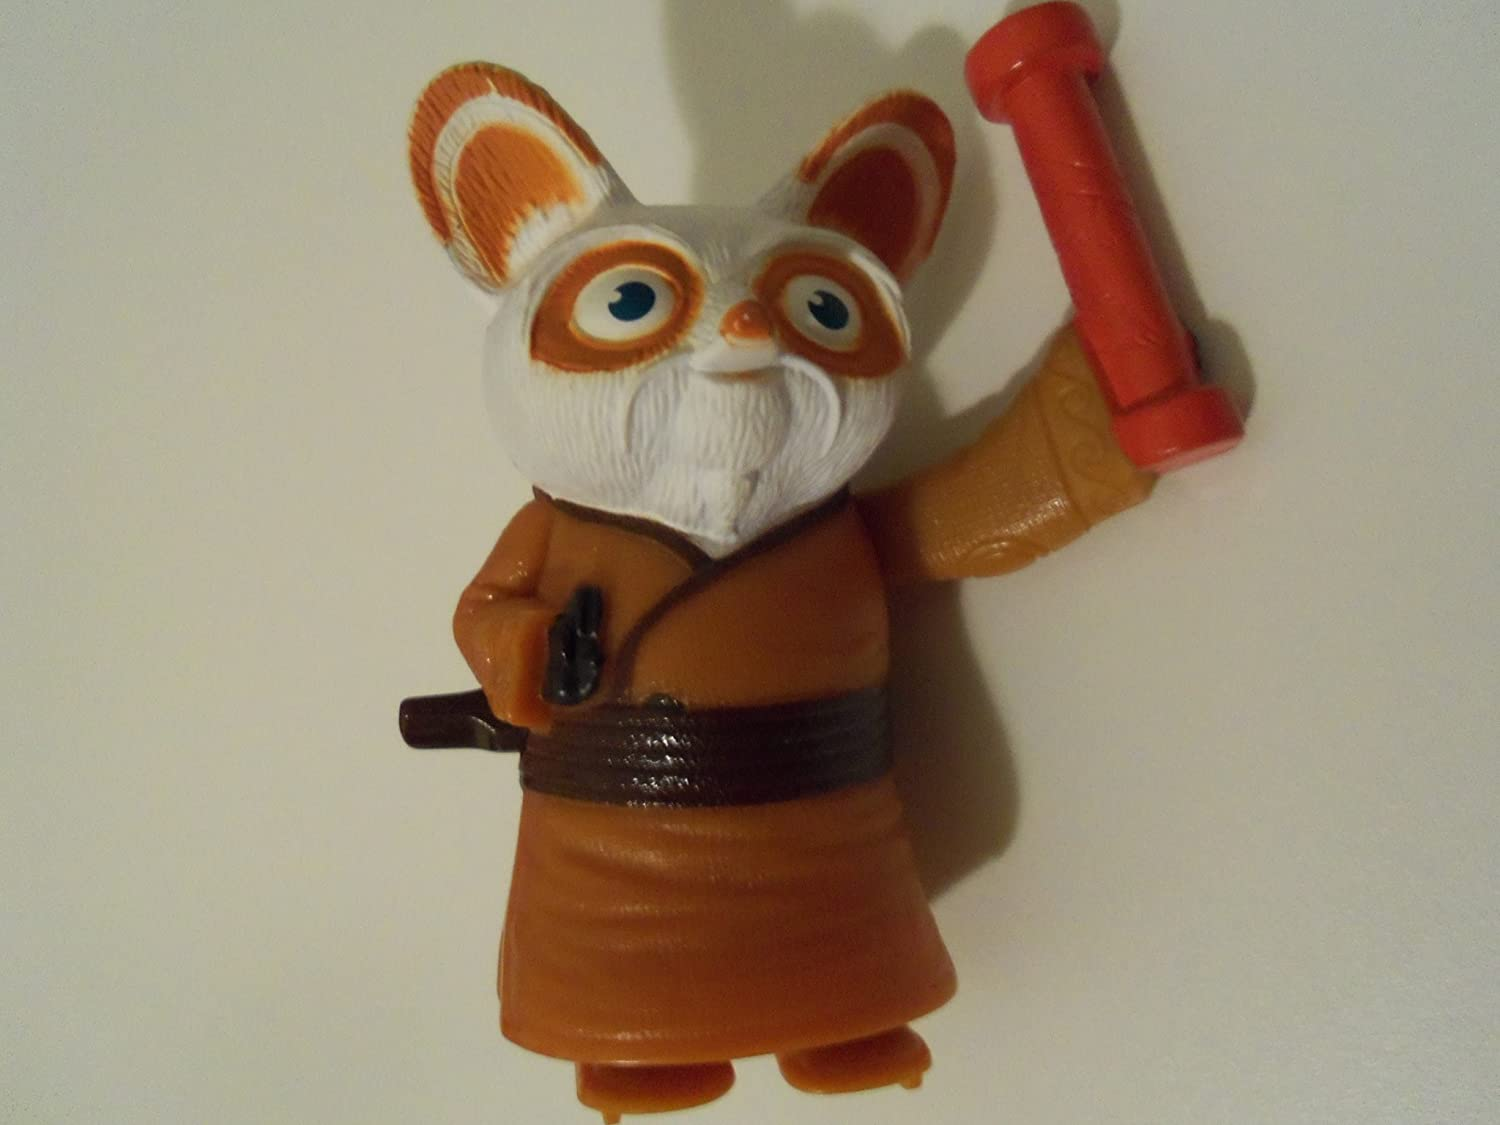 Amazon Com Mcdonalds Happy Meal 2008 Kung Fu Panda Master Shifu 2 Toys Games Master shifu and his wife alison daughter of oogway was having a child when that child was destined to be a great. mcdonalds happy meal 2008 kung fu panda